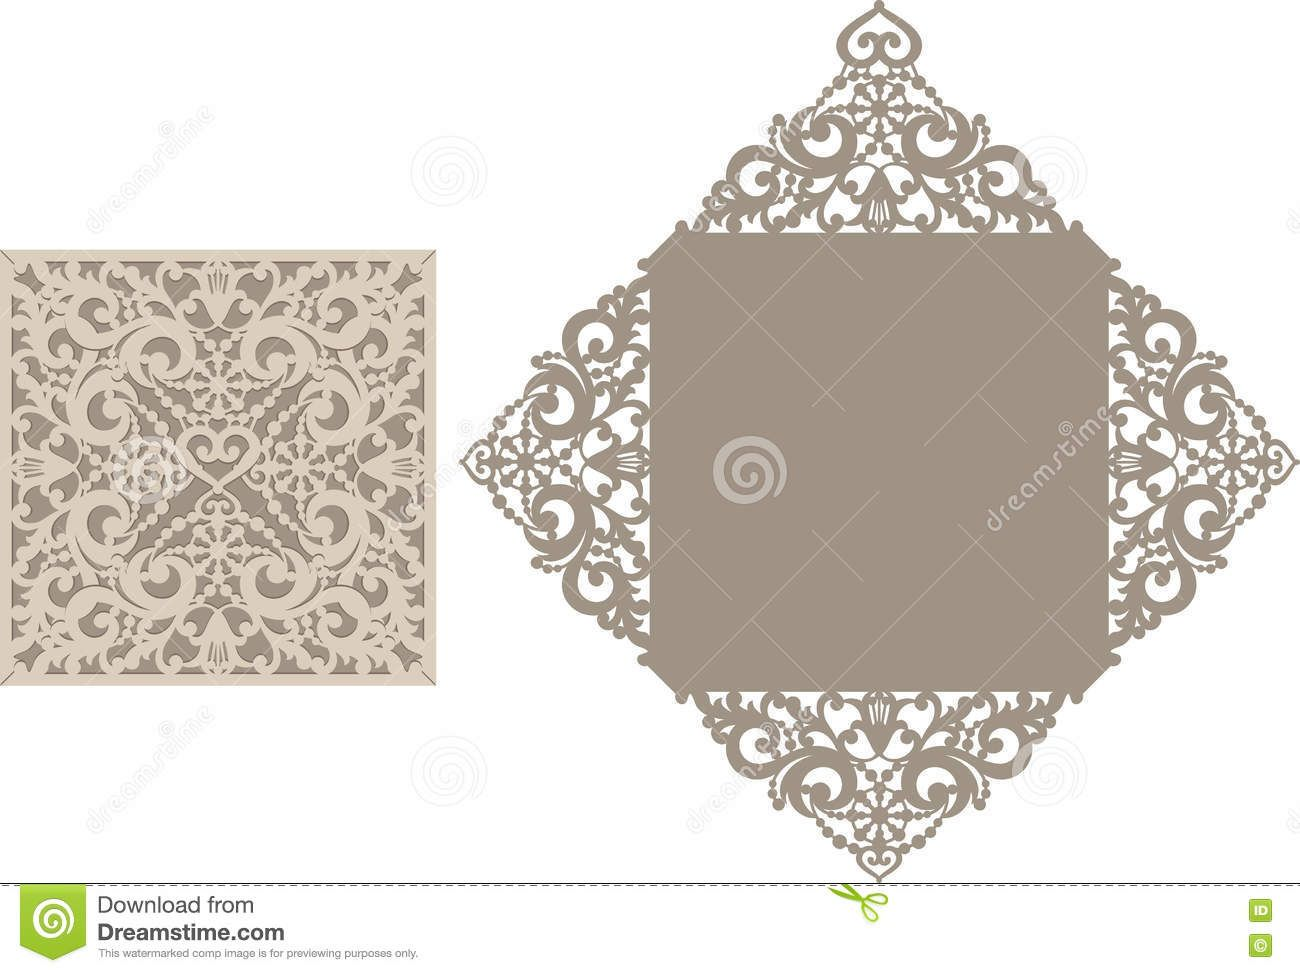 Laser cut envelope template for invitation wedding card download laser cut envelope template for invitation wedding card stock vector image 73943492 stopboris Choice Image